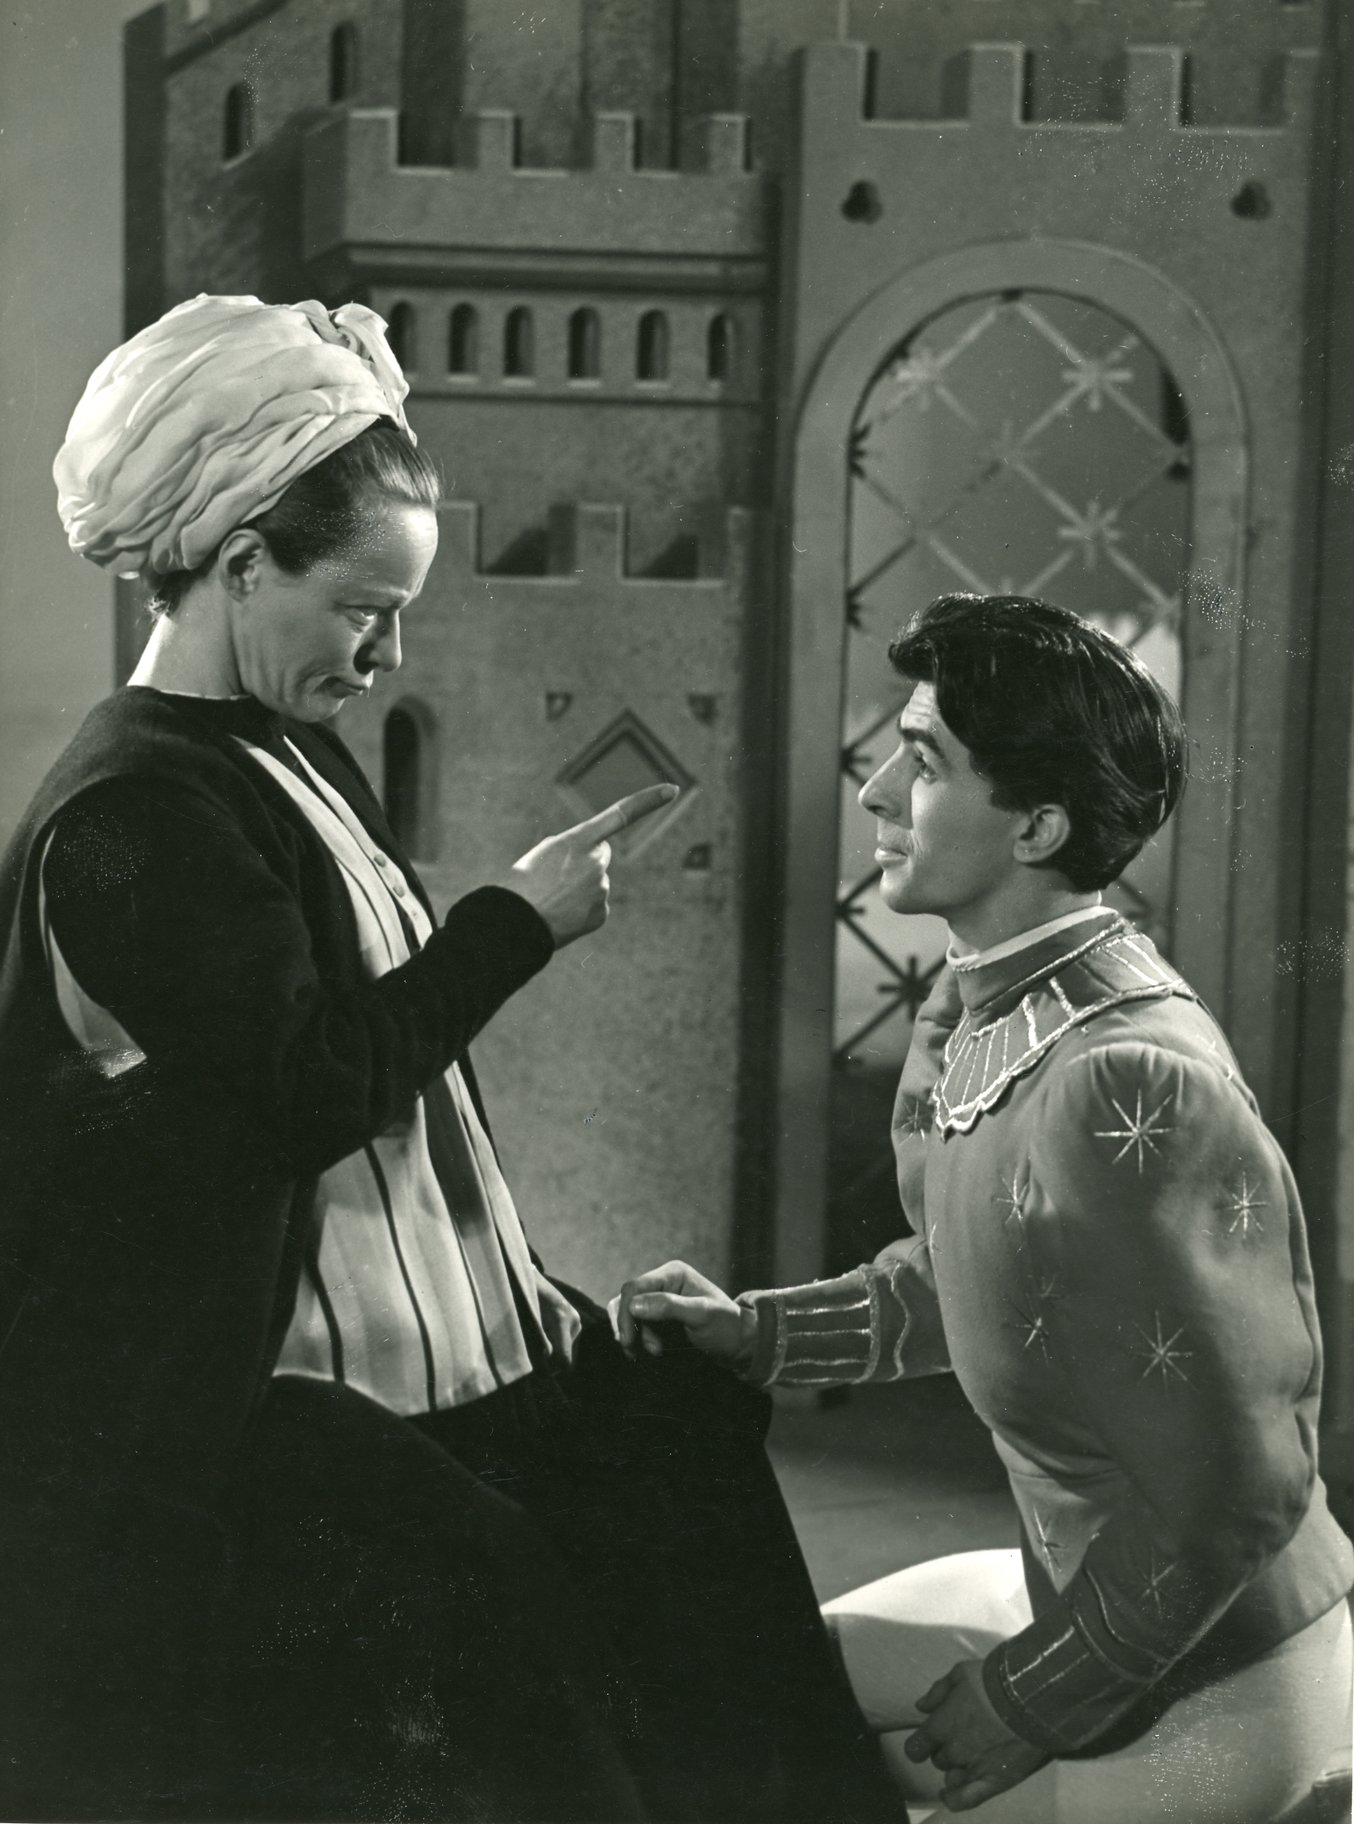 The nurse points an accusing finger at Romeo.